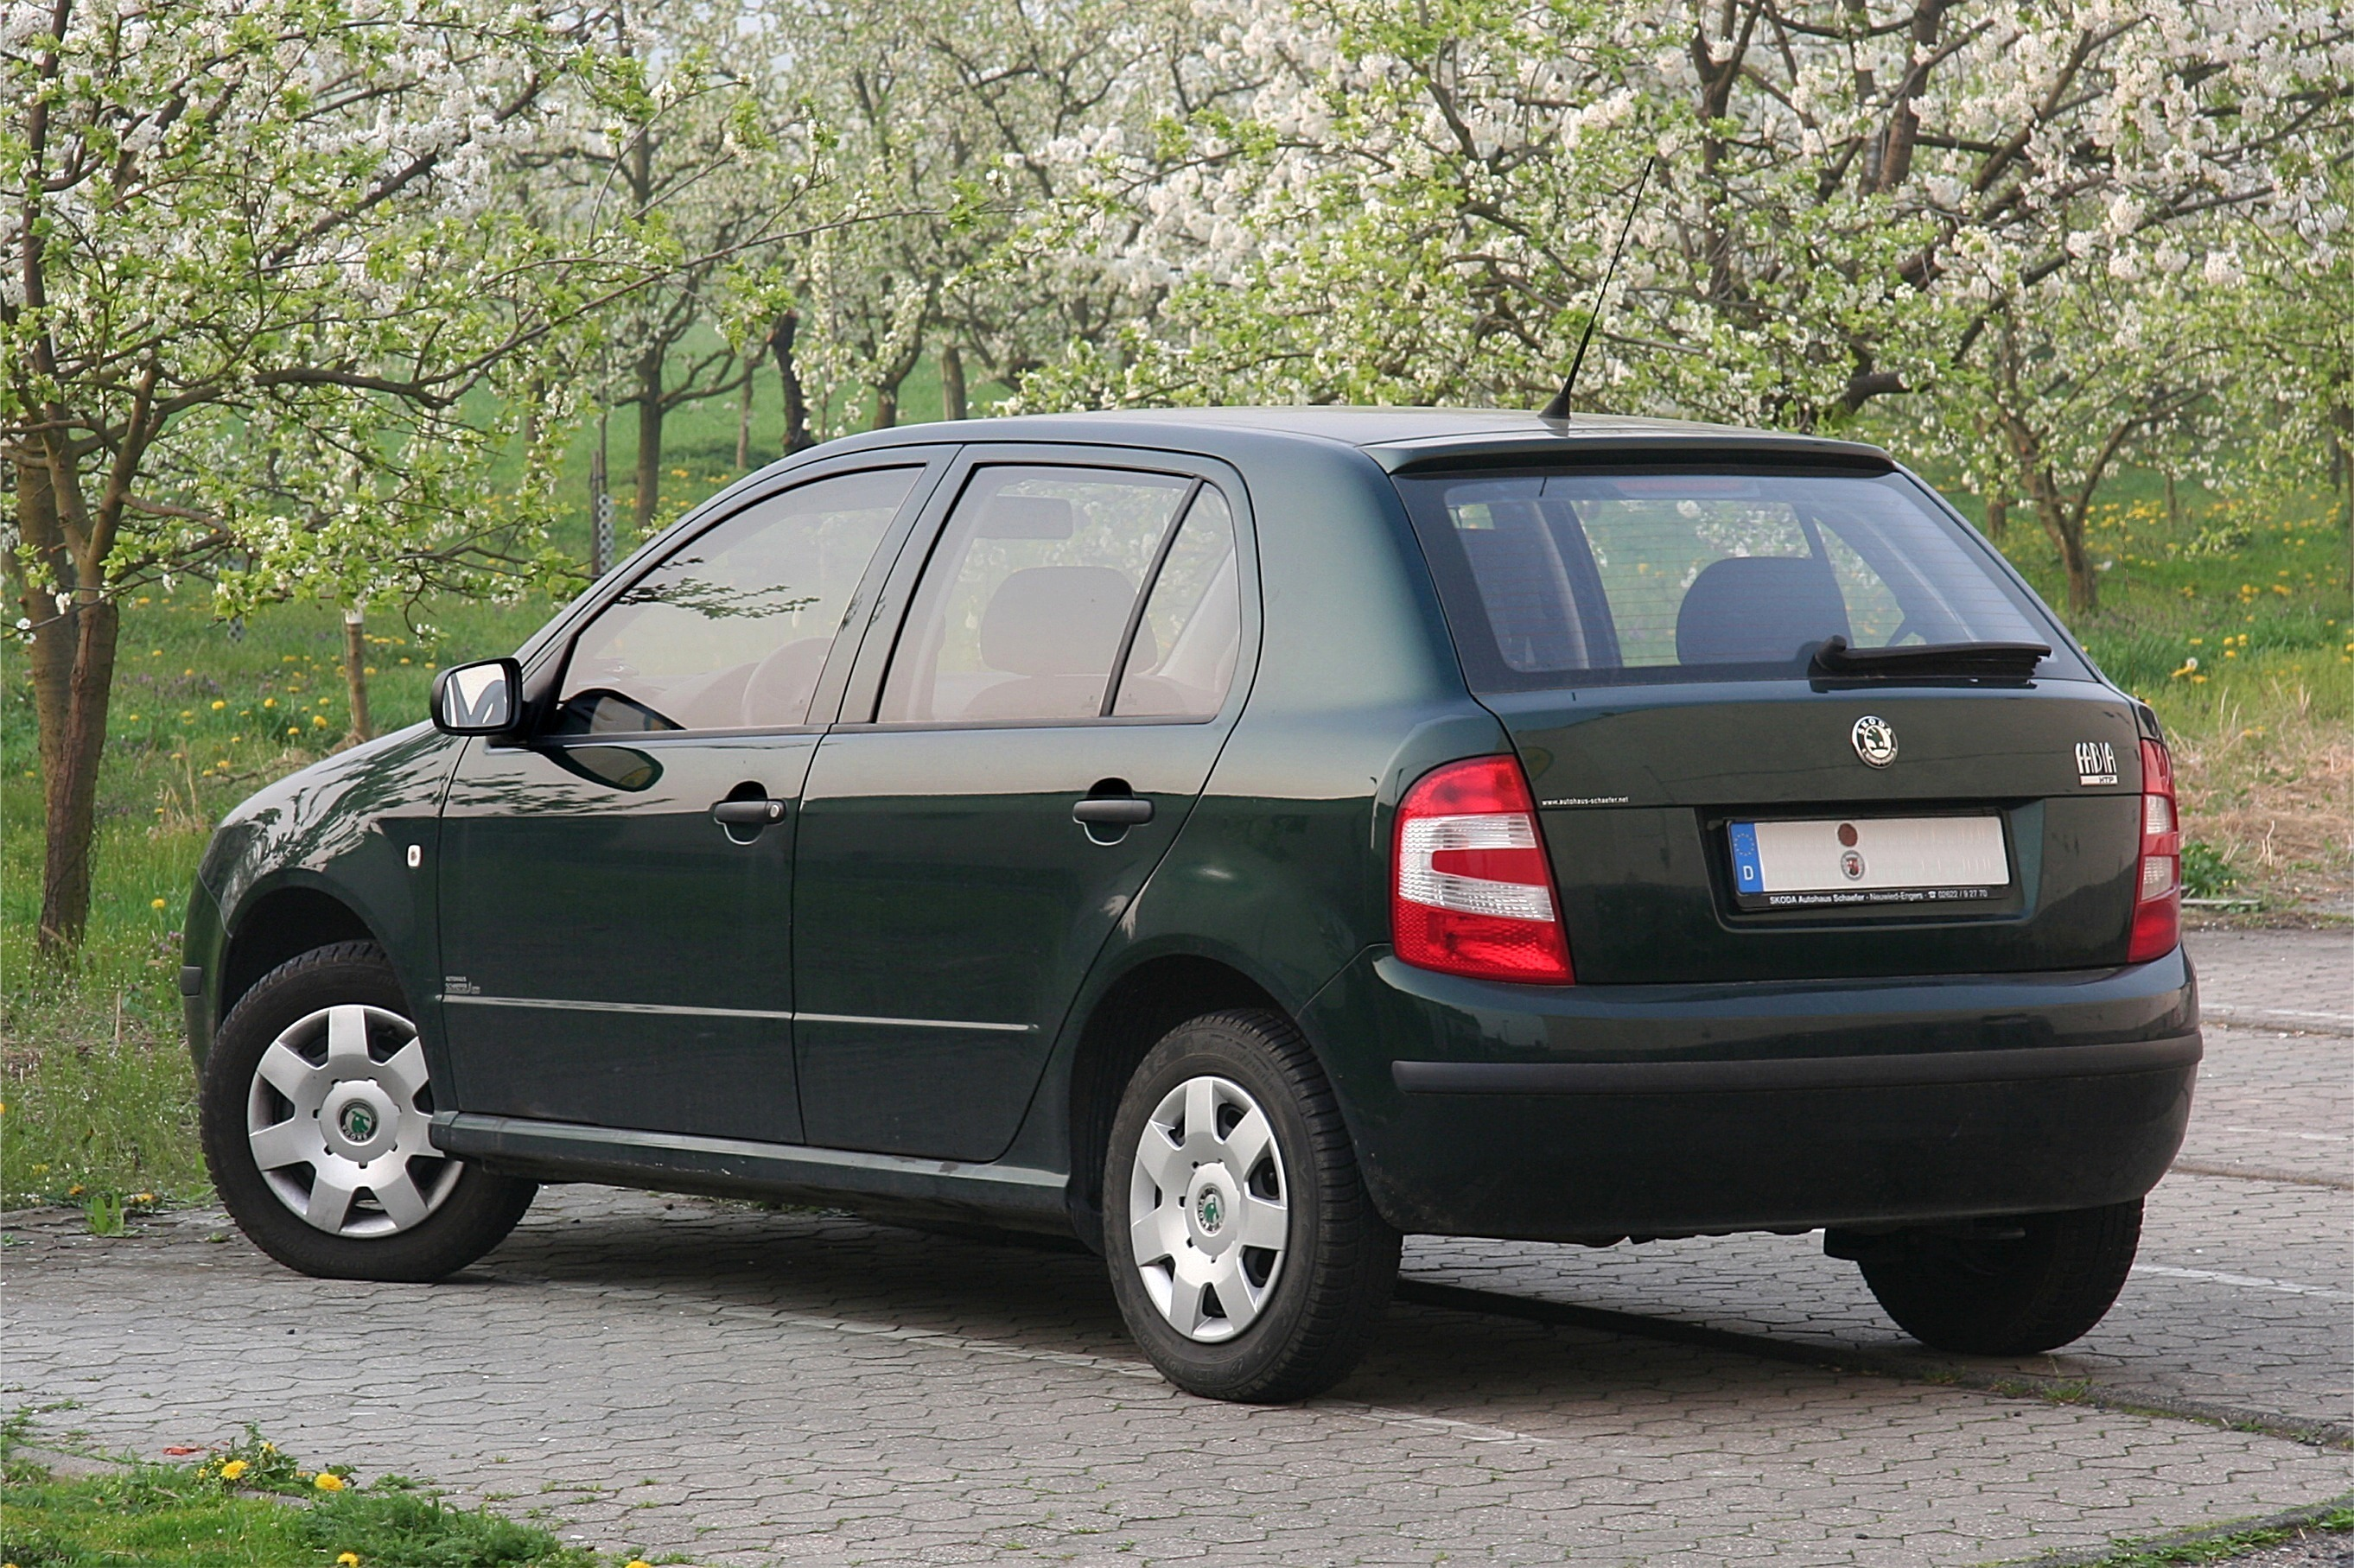 2005 Skoda Fabia 6y Pictures Information And Specs